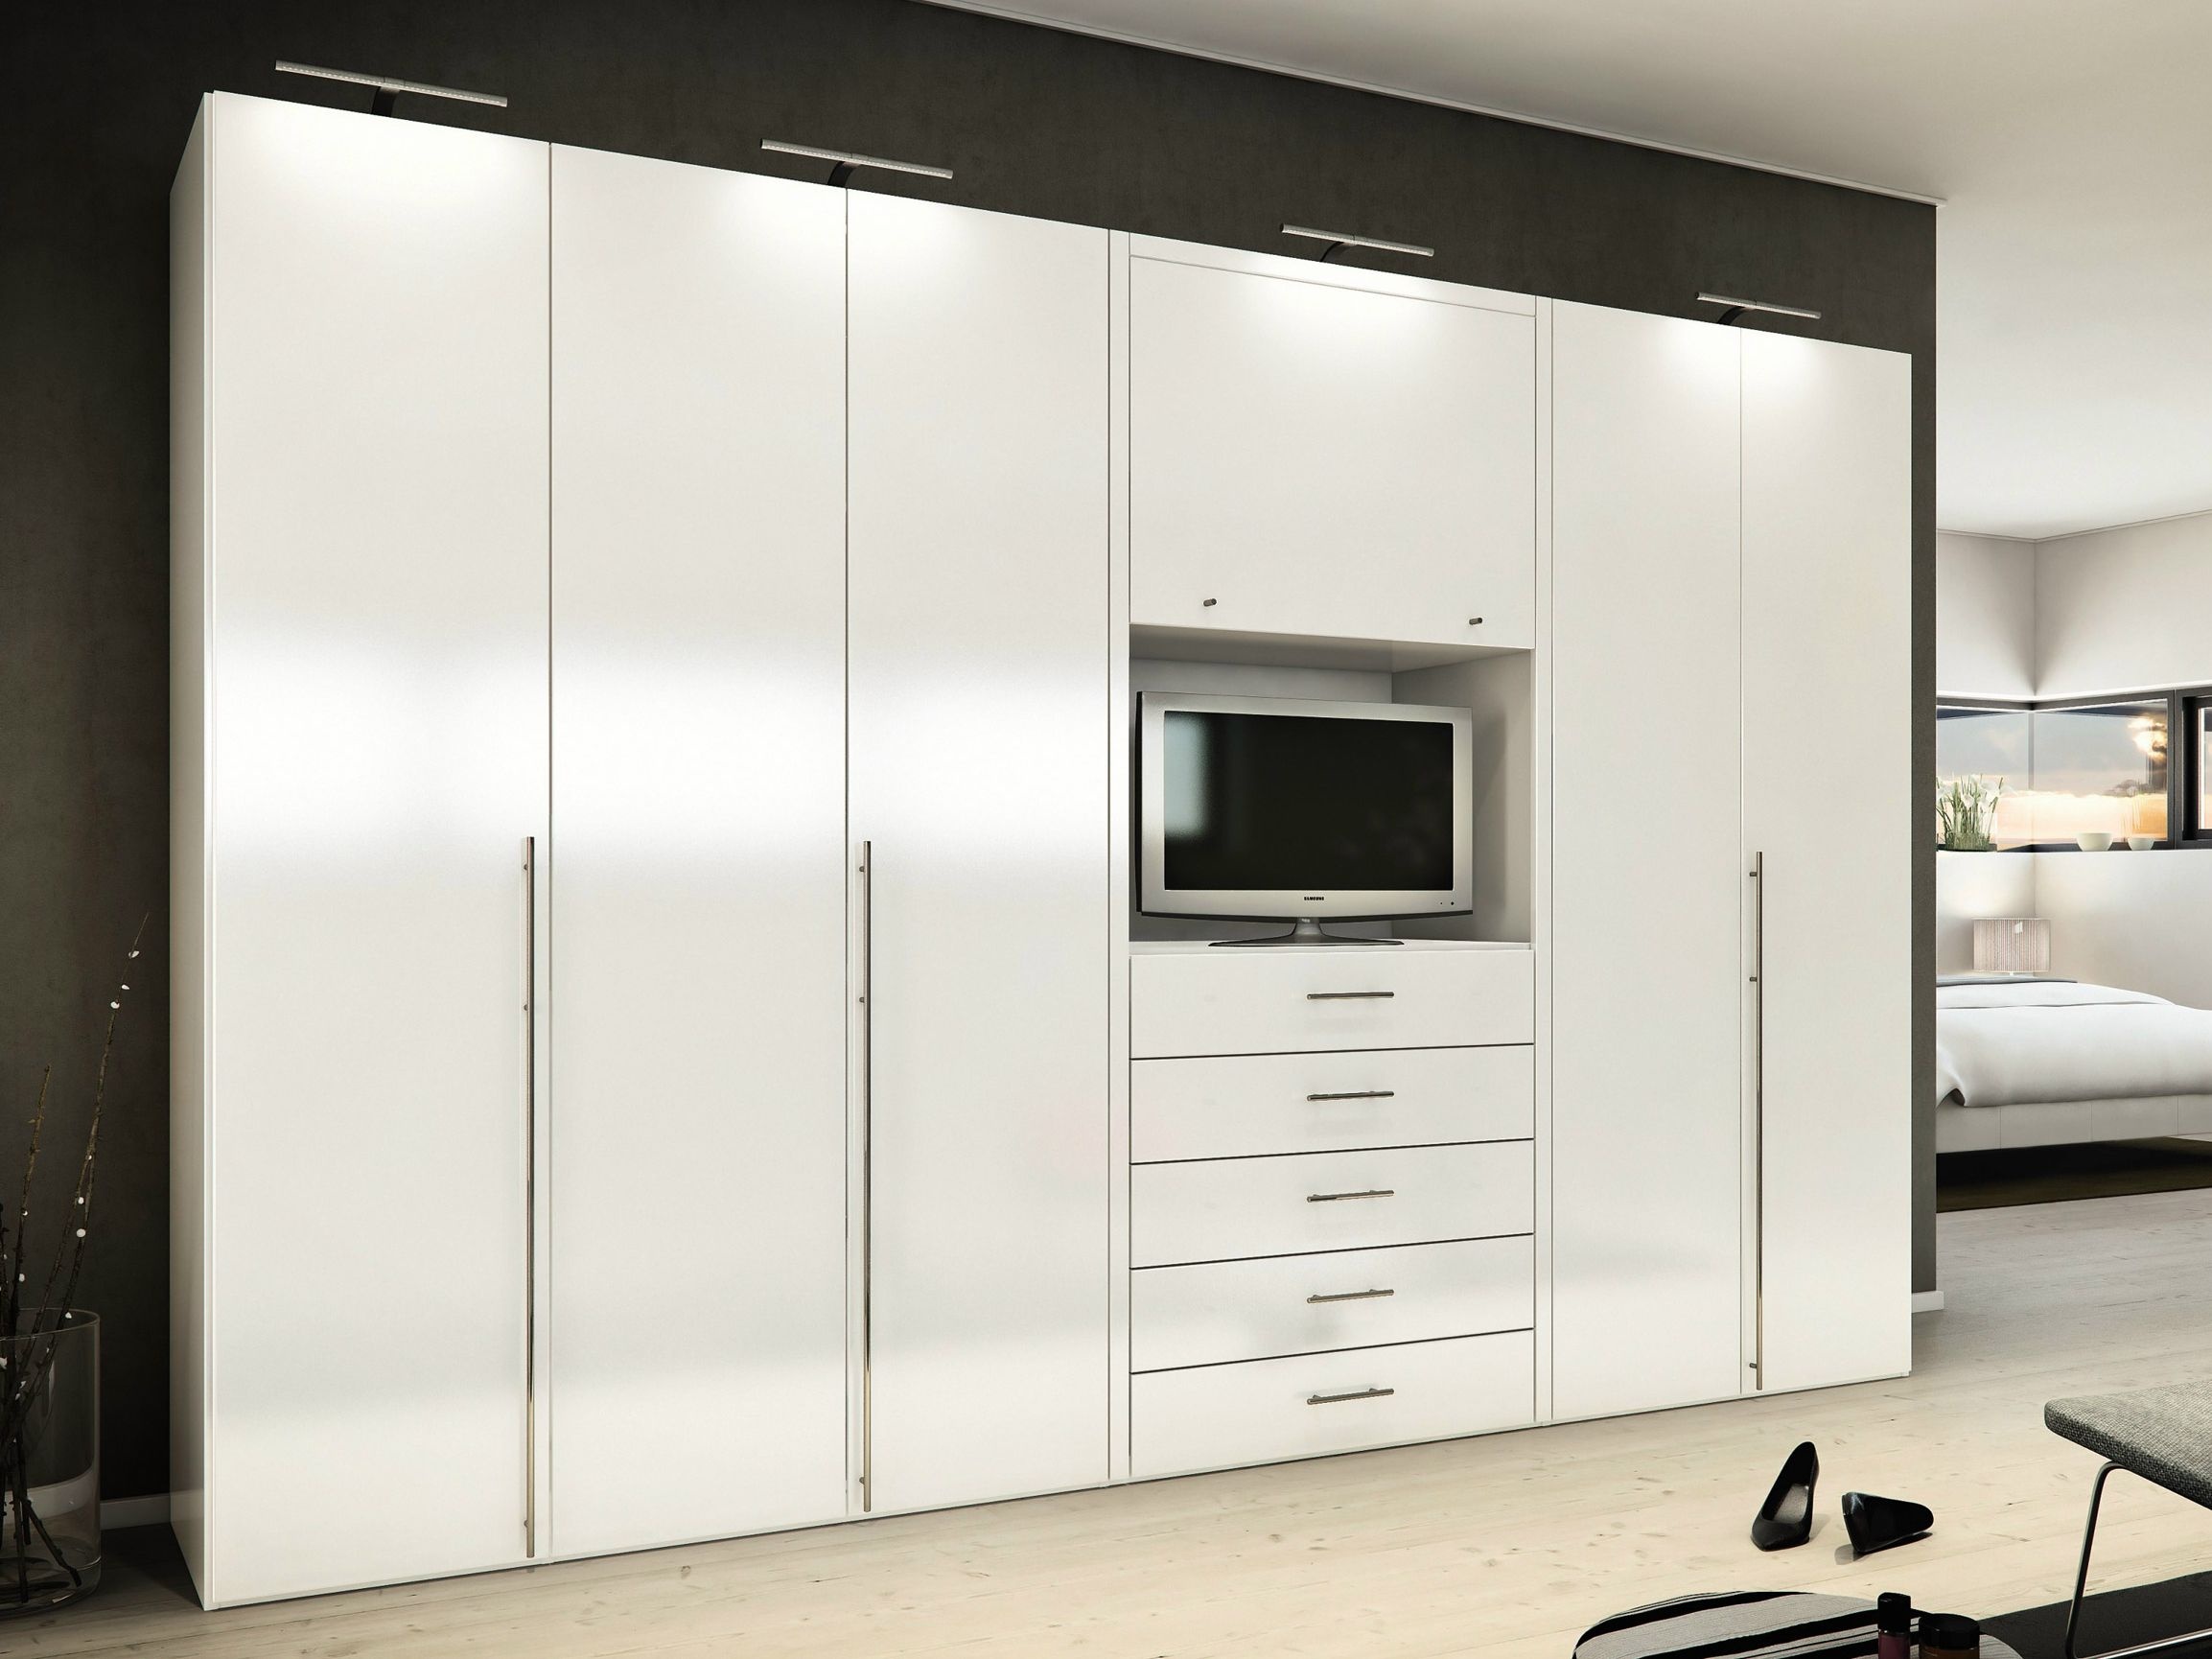 Bedroom ideas furniture mesmerizing white high gloss built in wardrobe with tv closet - Bedroom wall closet designs ...